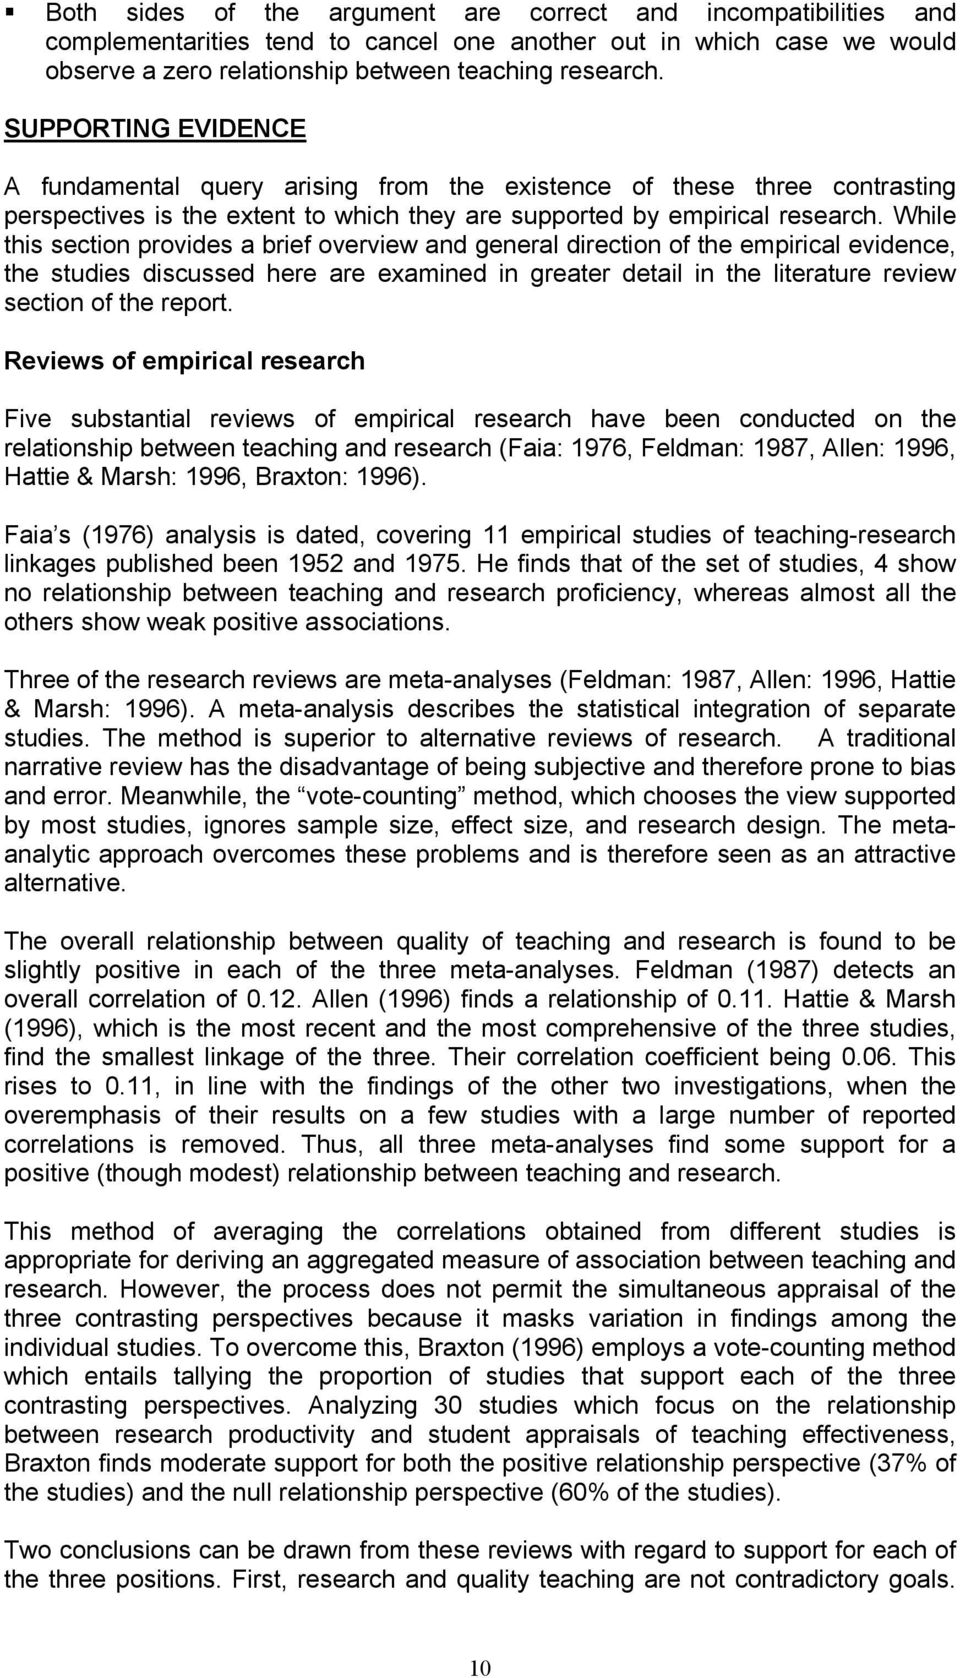 While this section provides a brief overview and general direction of the empirical evidence, the studies discussed here are examined in greater detail in the literature review section of the report.